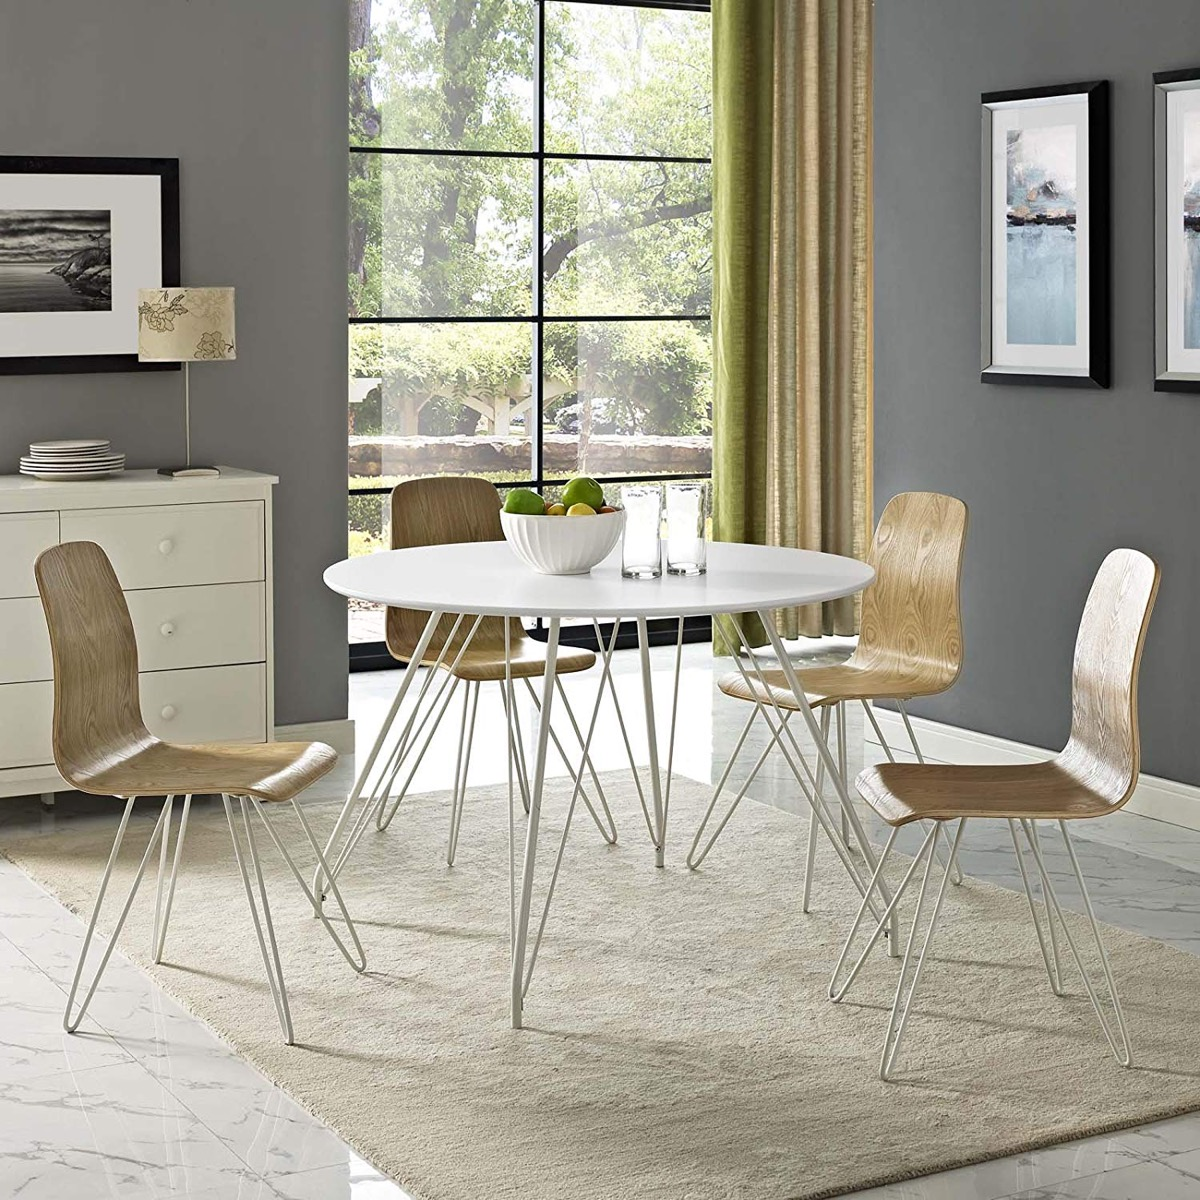 Modern-Round-White-Dining-Table-With-Hairpin-Legs-Mid-Century-Modern